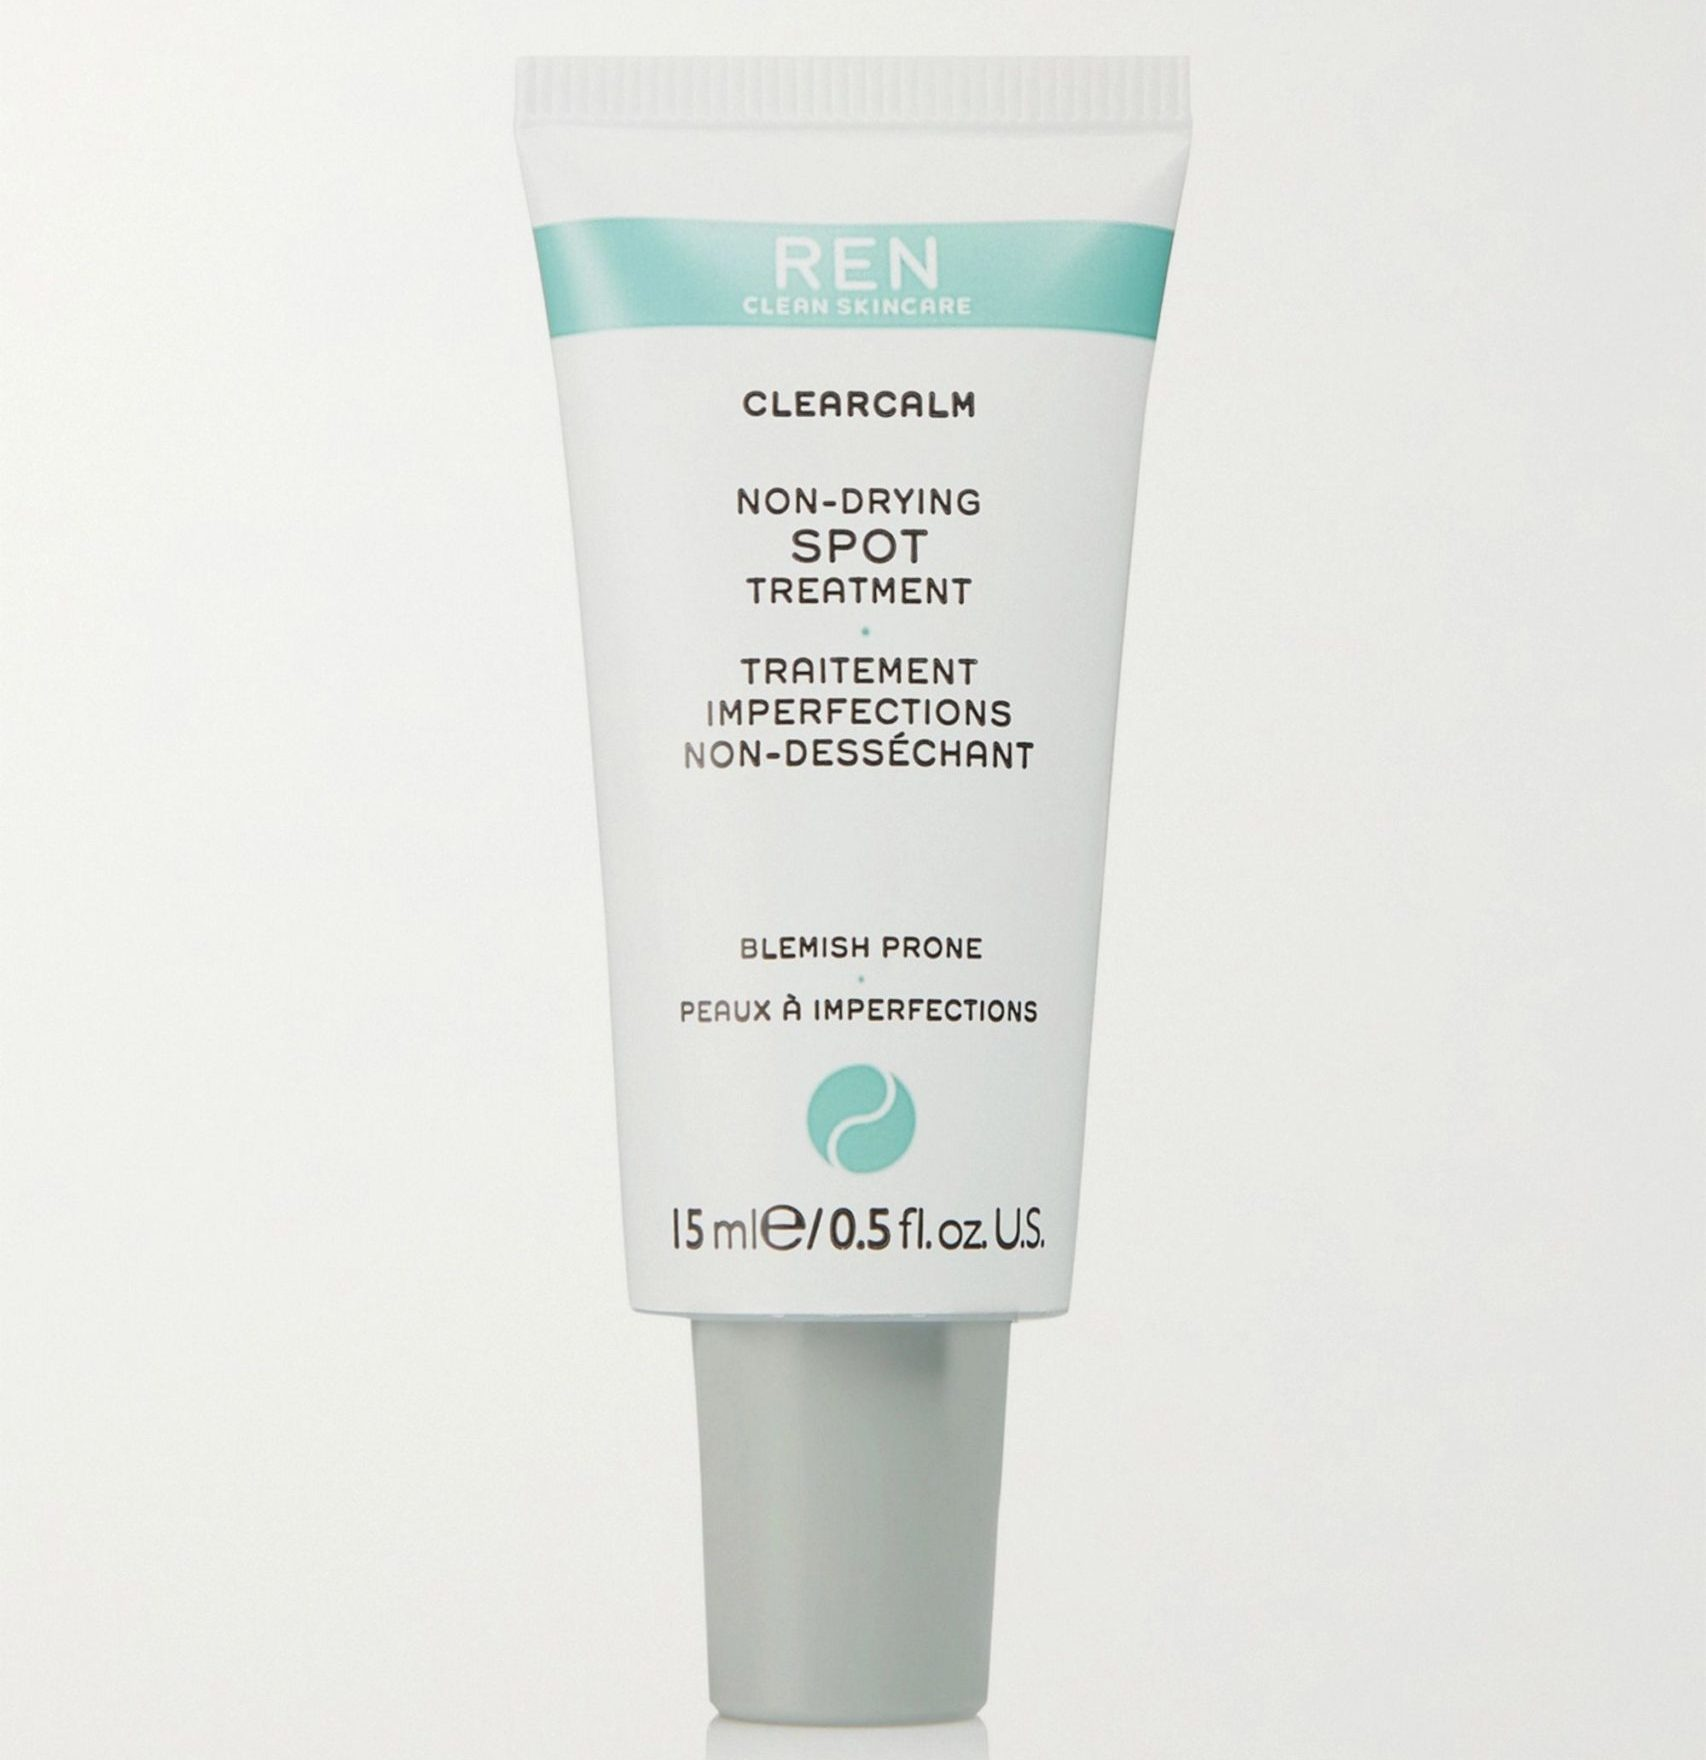 My Celebrity Life – Ren Clean Skincare Clearcalm NonDrying Spot Treatment